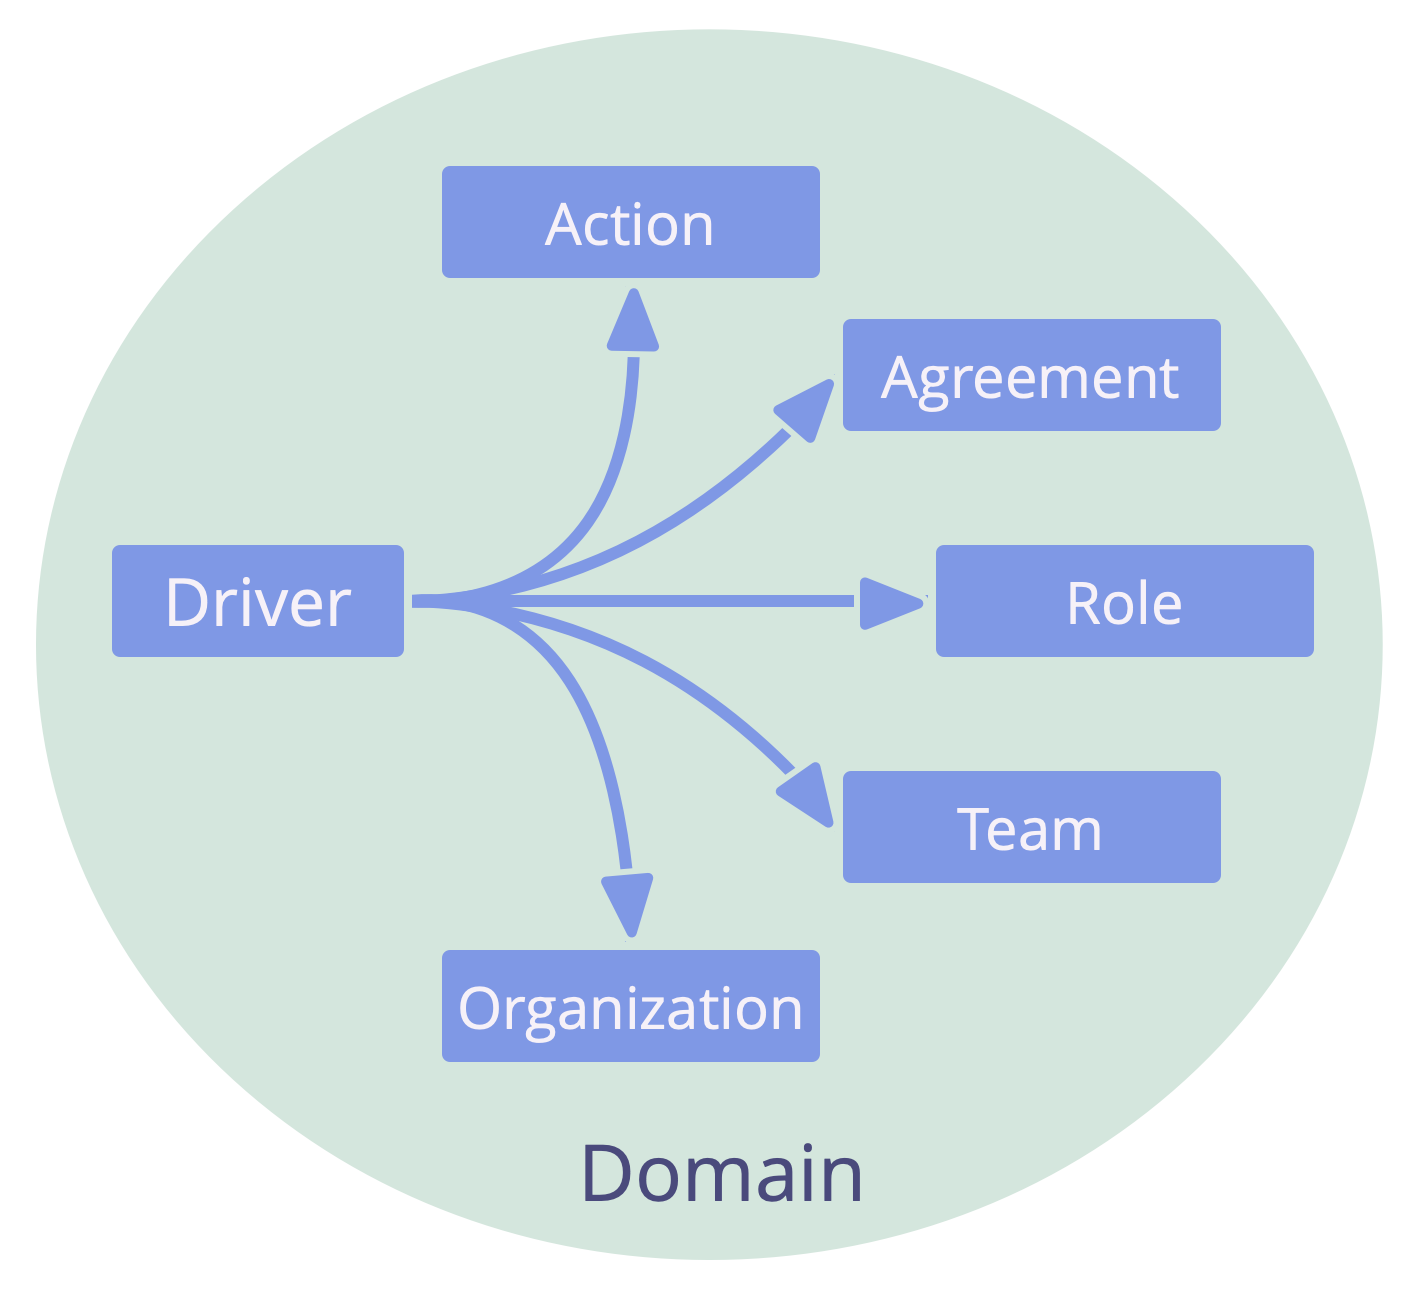 Possible responses to organizational drivers